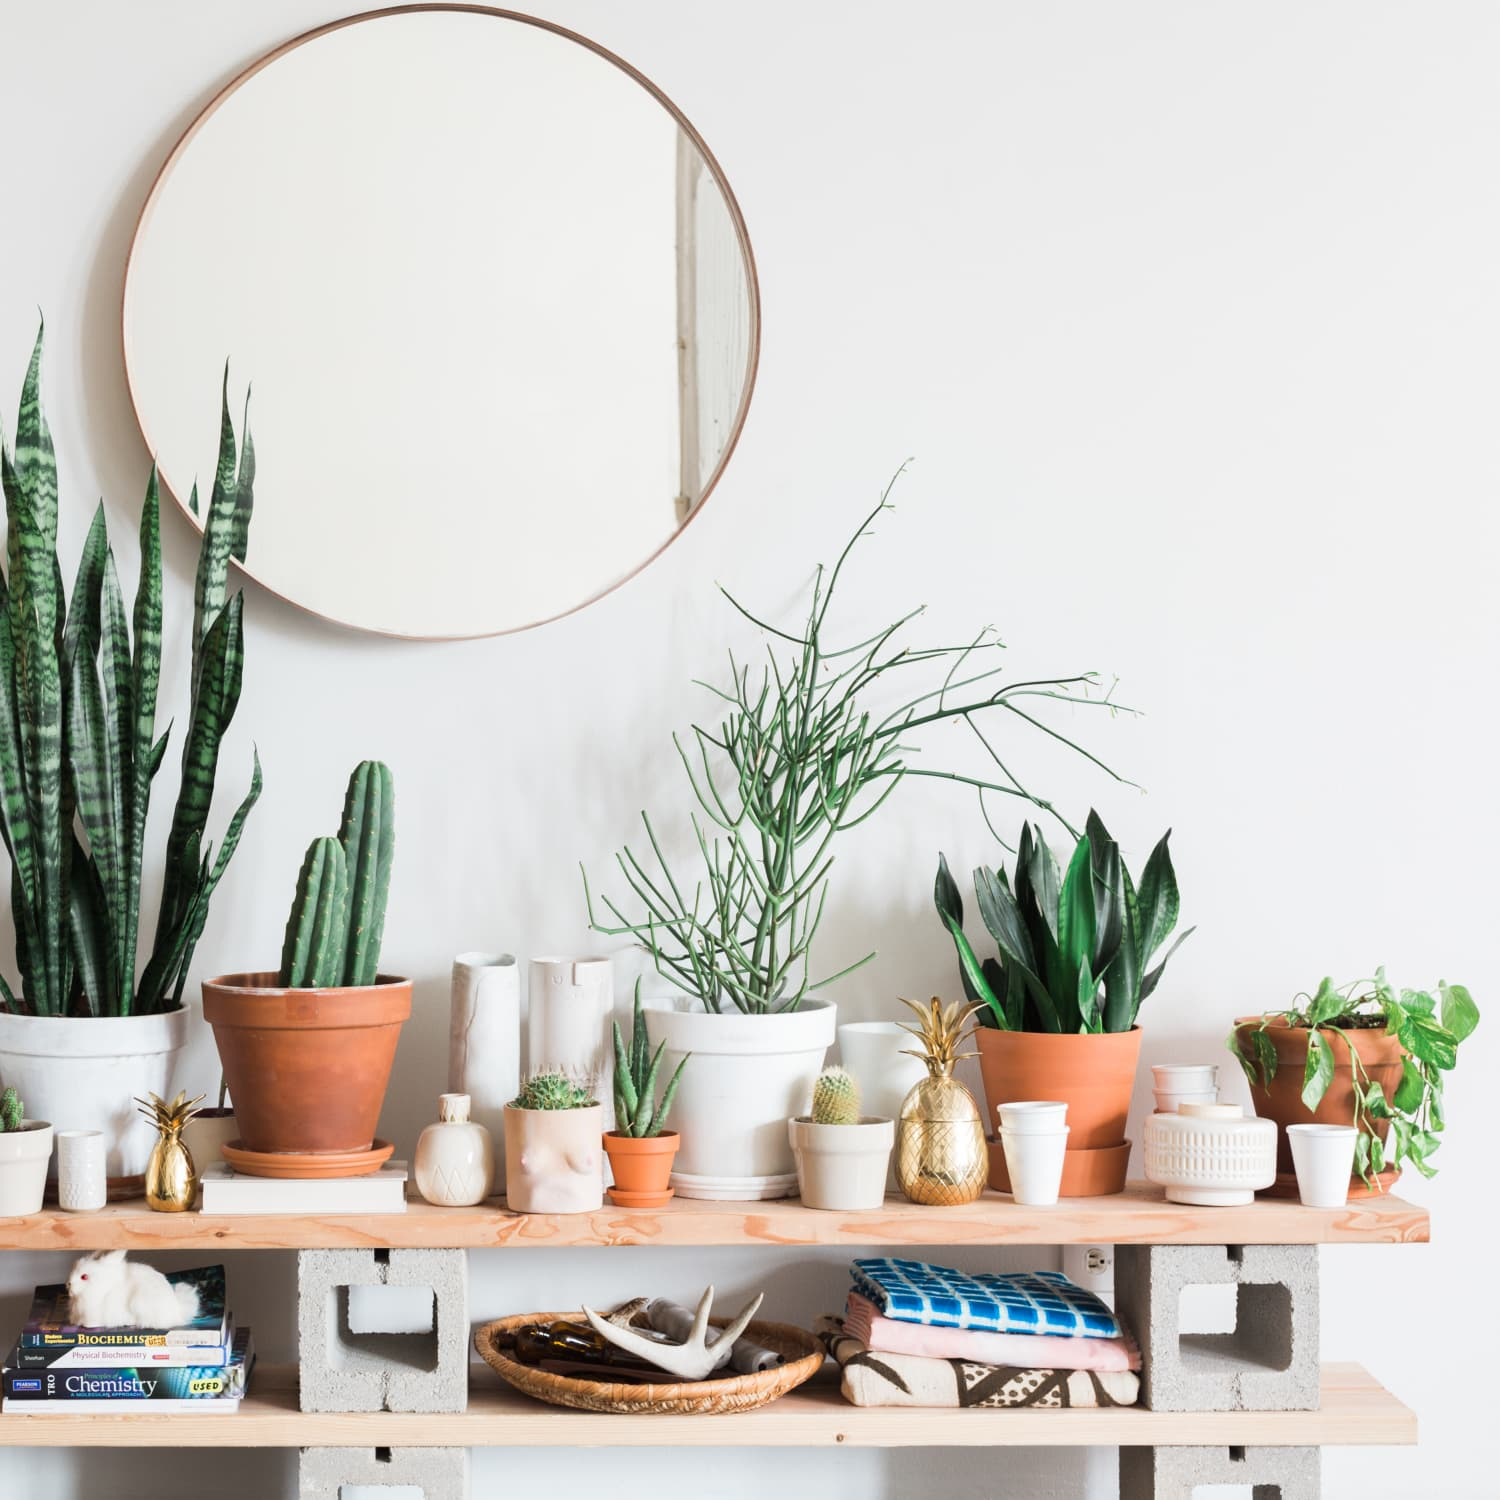 Pencil Cactus Care How To Grow Maintain Pencil Cactus Plants Apartment Therapy